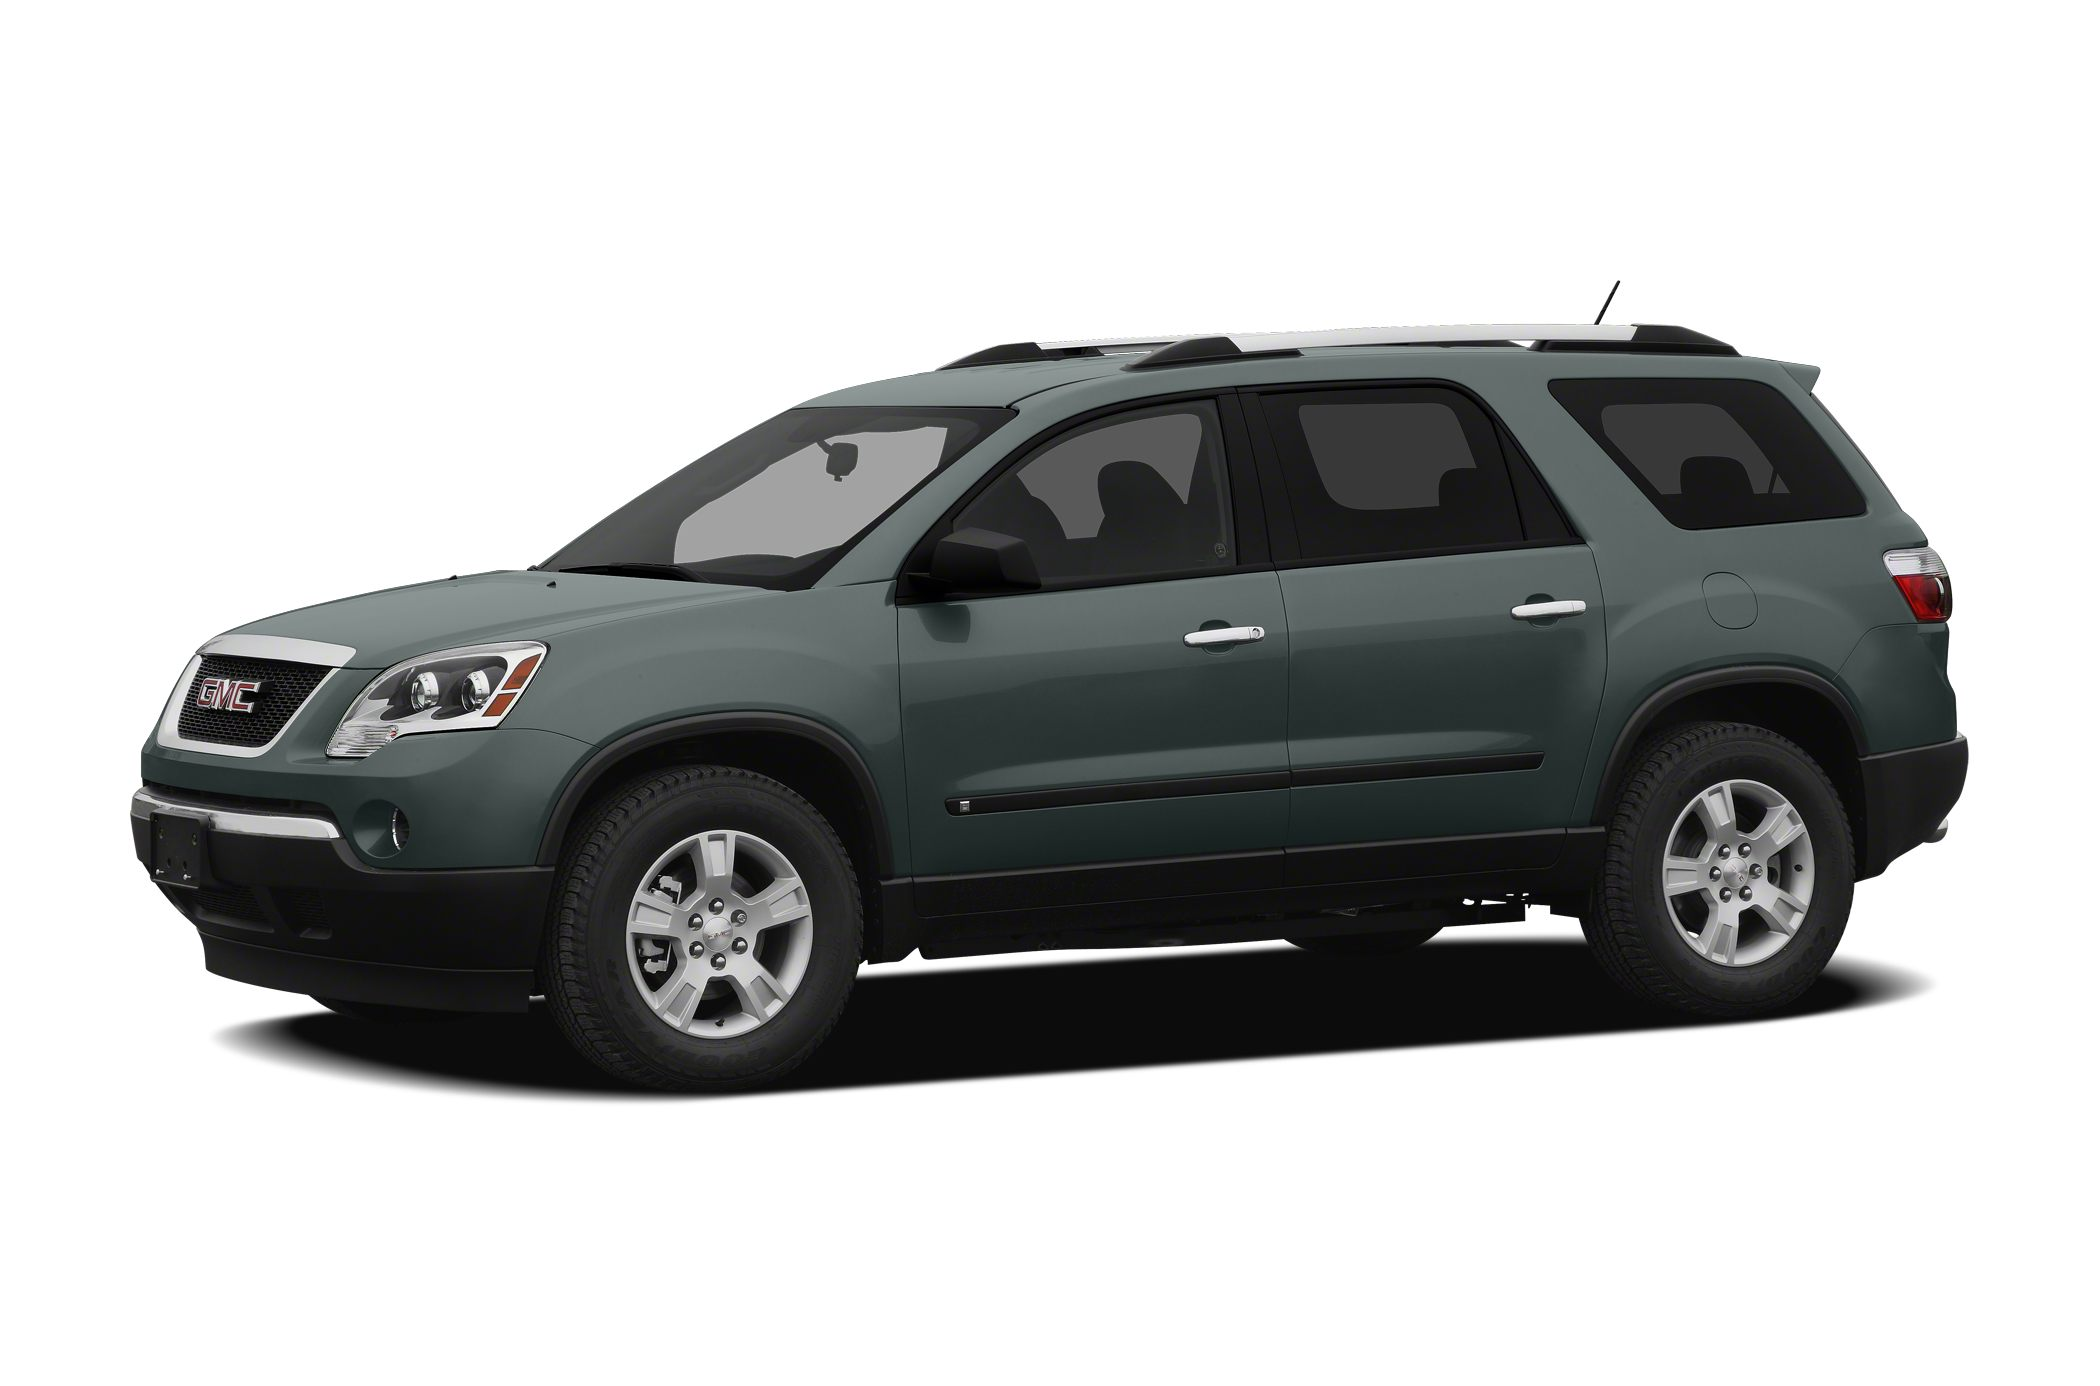 2010 GMC Acadia SLT-1 SUV for sale in Staunton for $23,900 with 57,665 miles